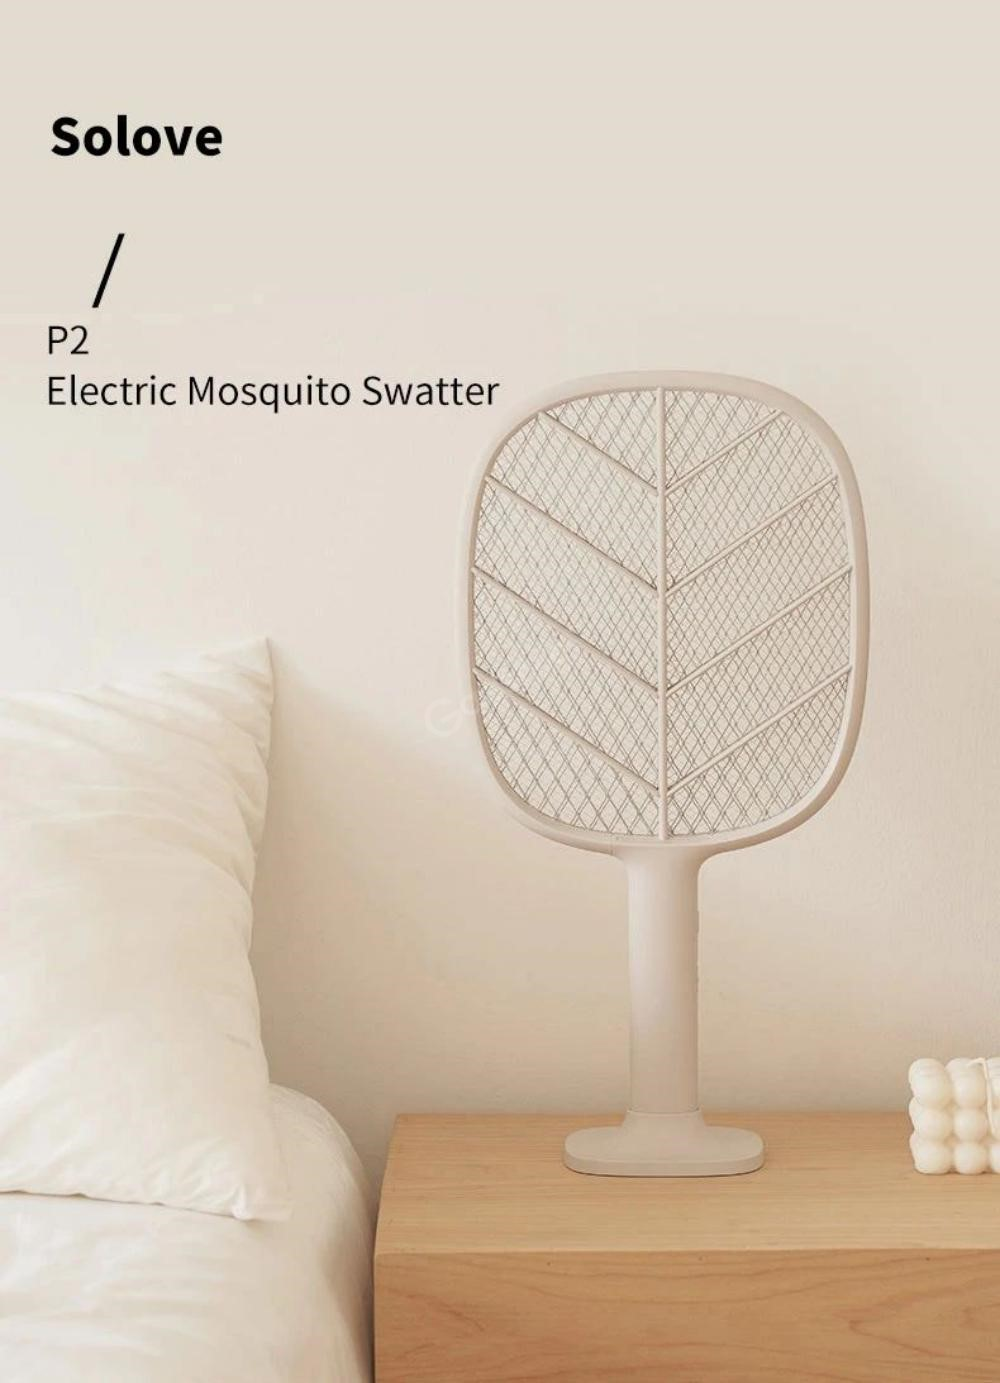 Xiaomi Solove P2 Mosquito Electric Mosquito Swatter Bat (1)